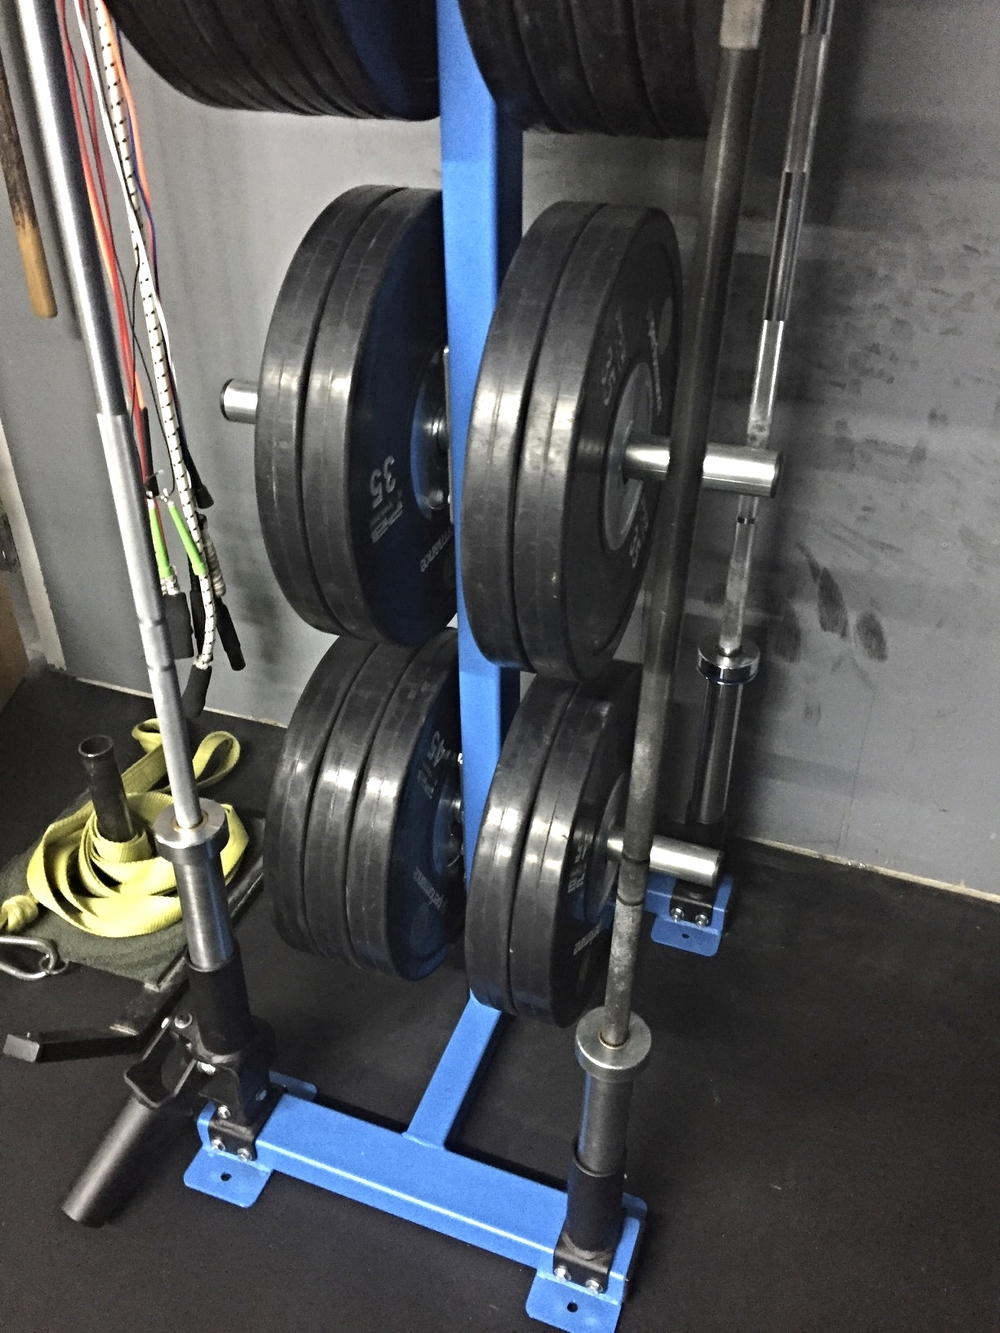 Bumper plate holder & Bumper plate storage rack - Free Standing - MoveStrong